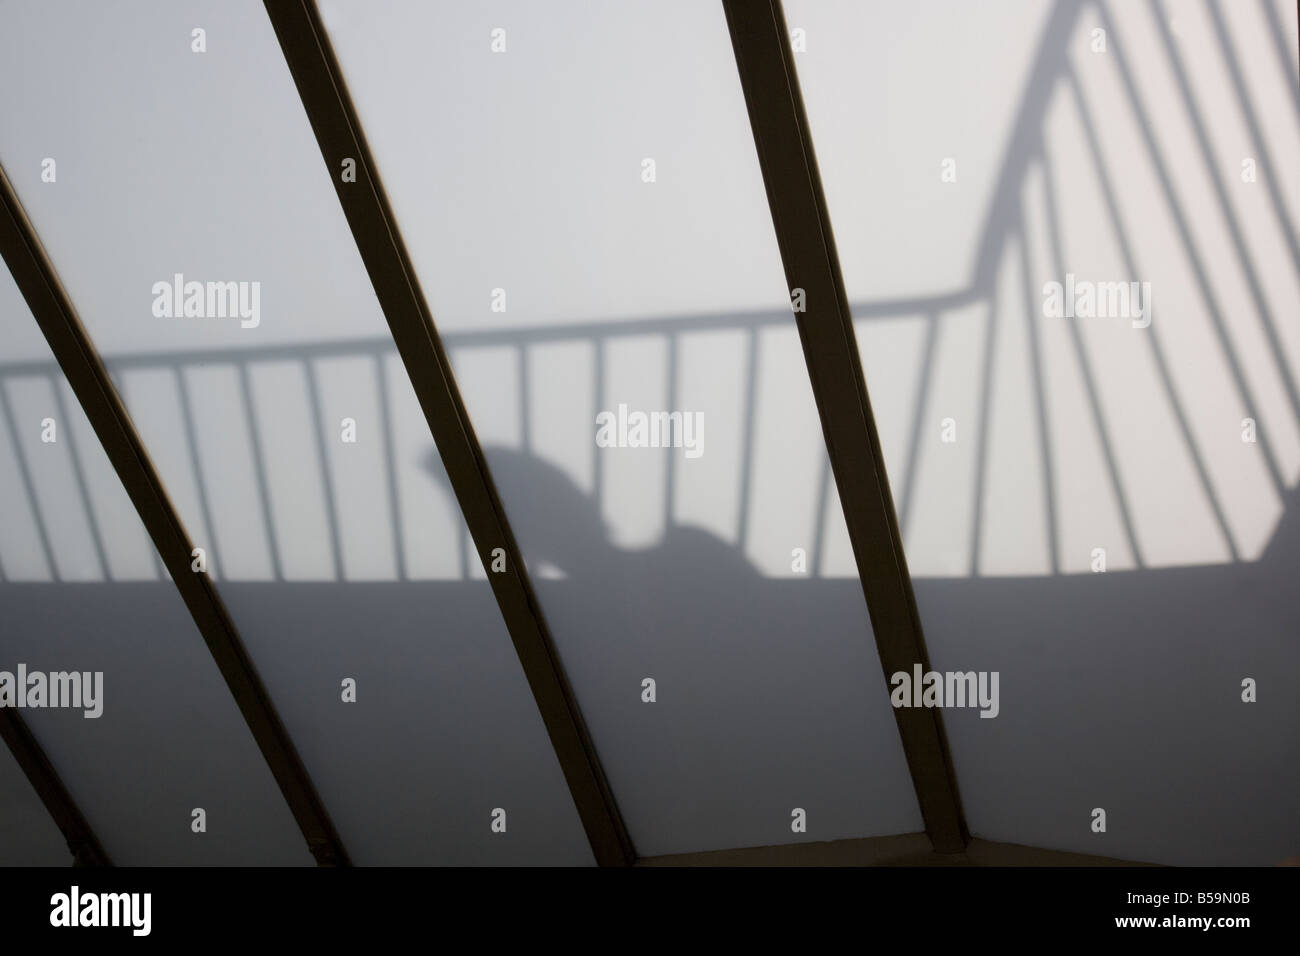 Roof Skylight Stock Photos & Roof Skylight Stock Images - Page 2 - Alamy